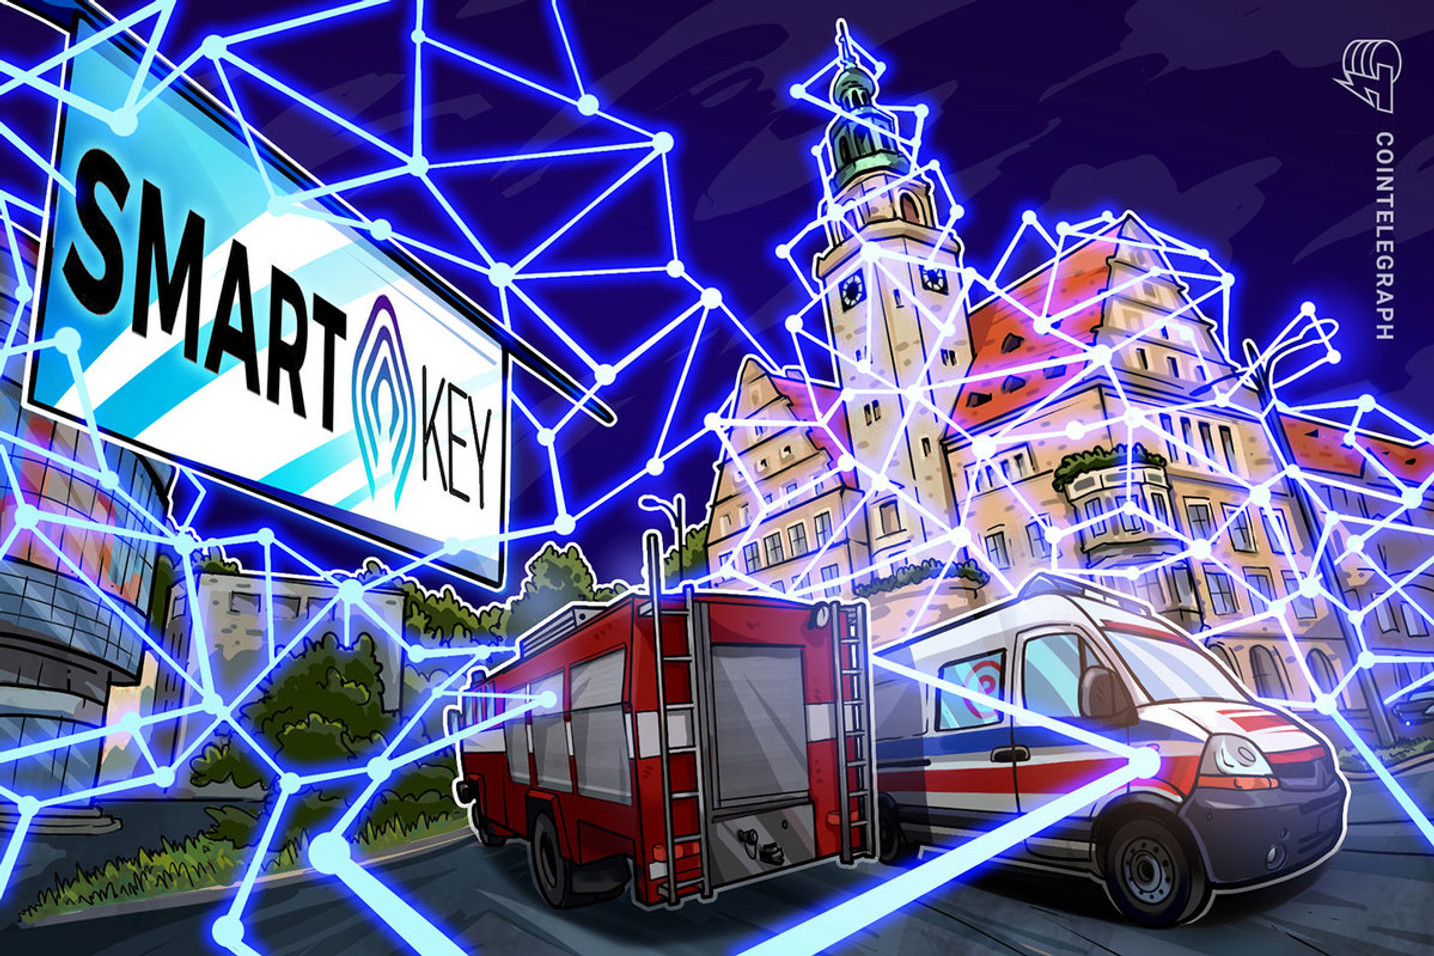 Smart NFT Project joins major telecom to power future of smart cities